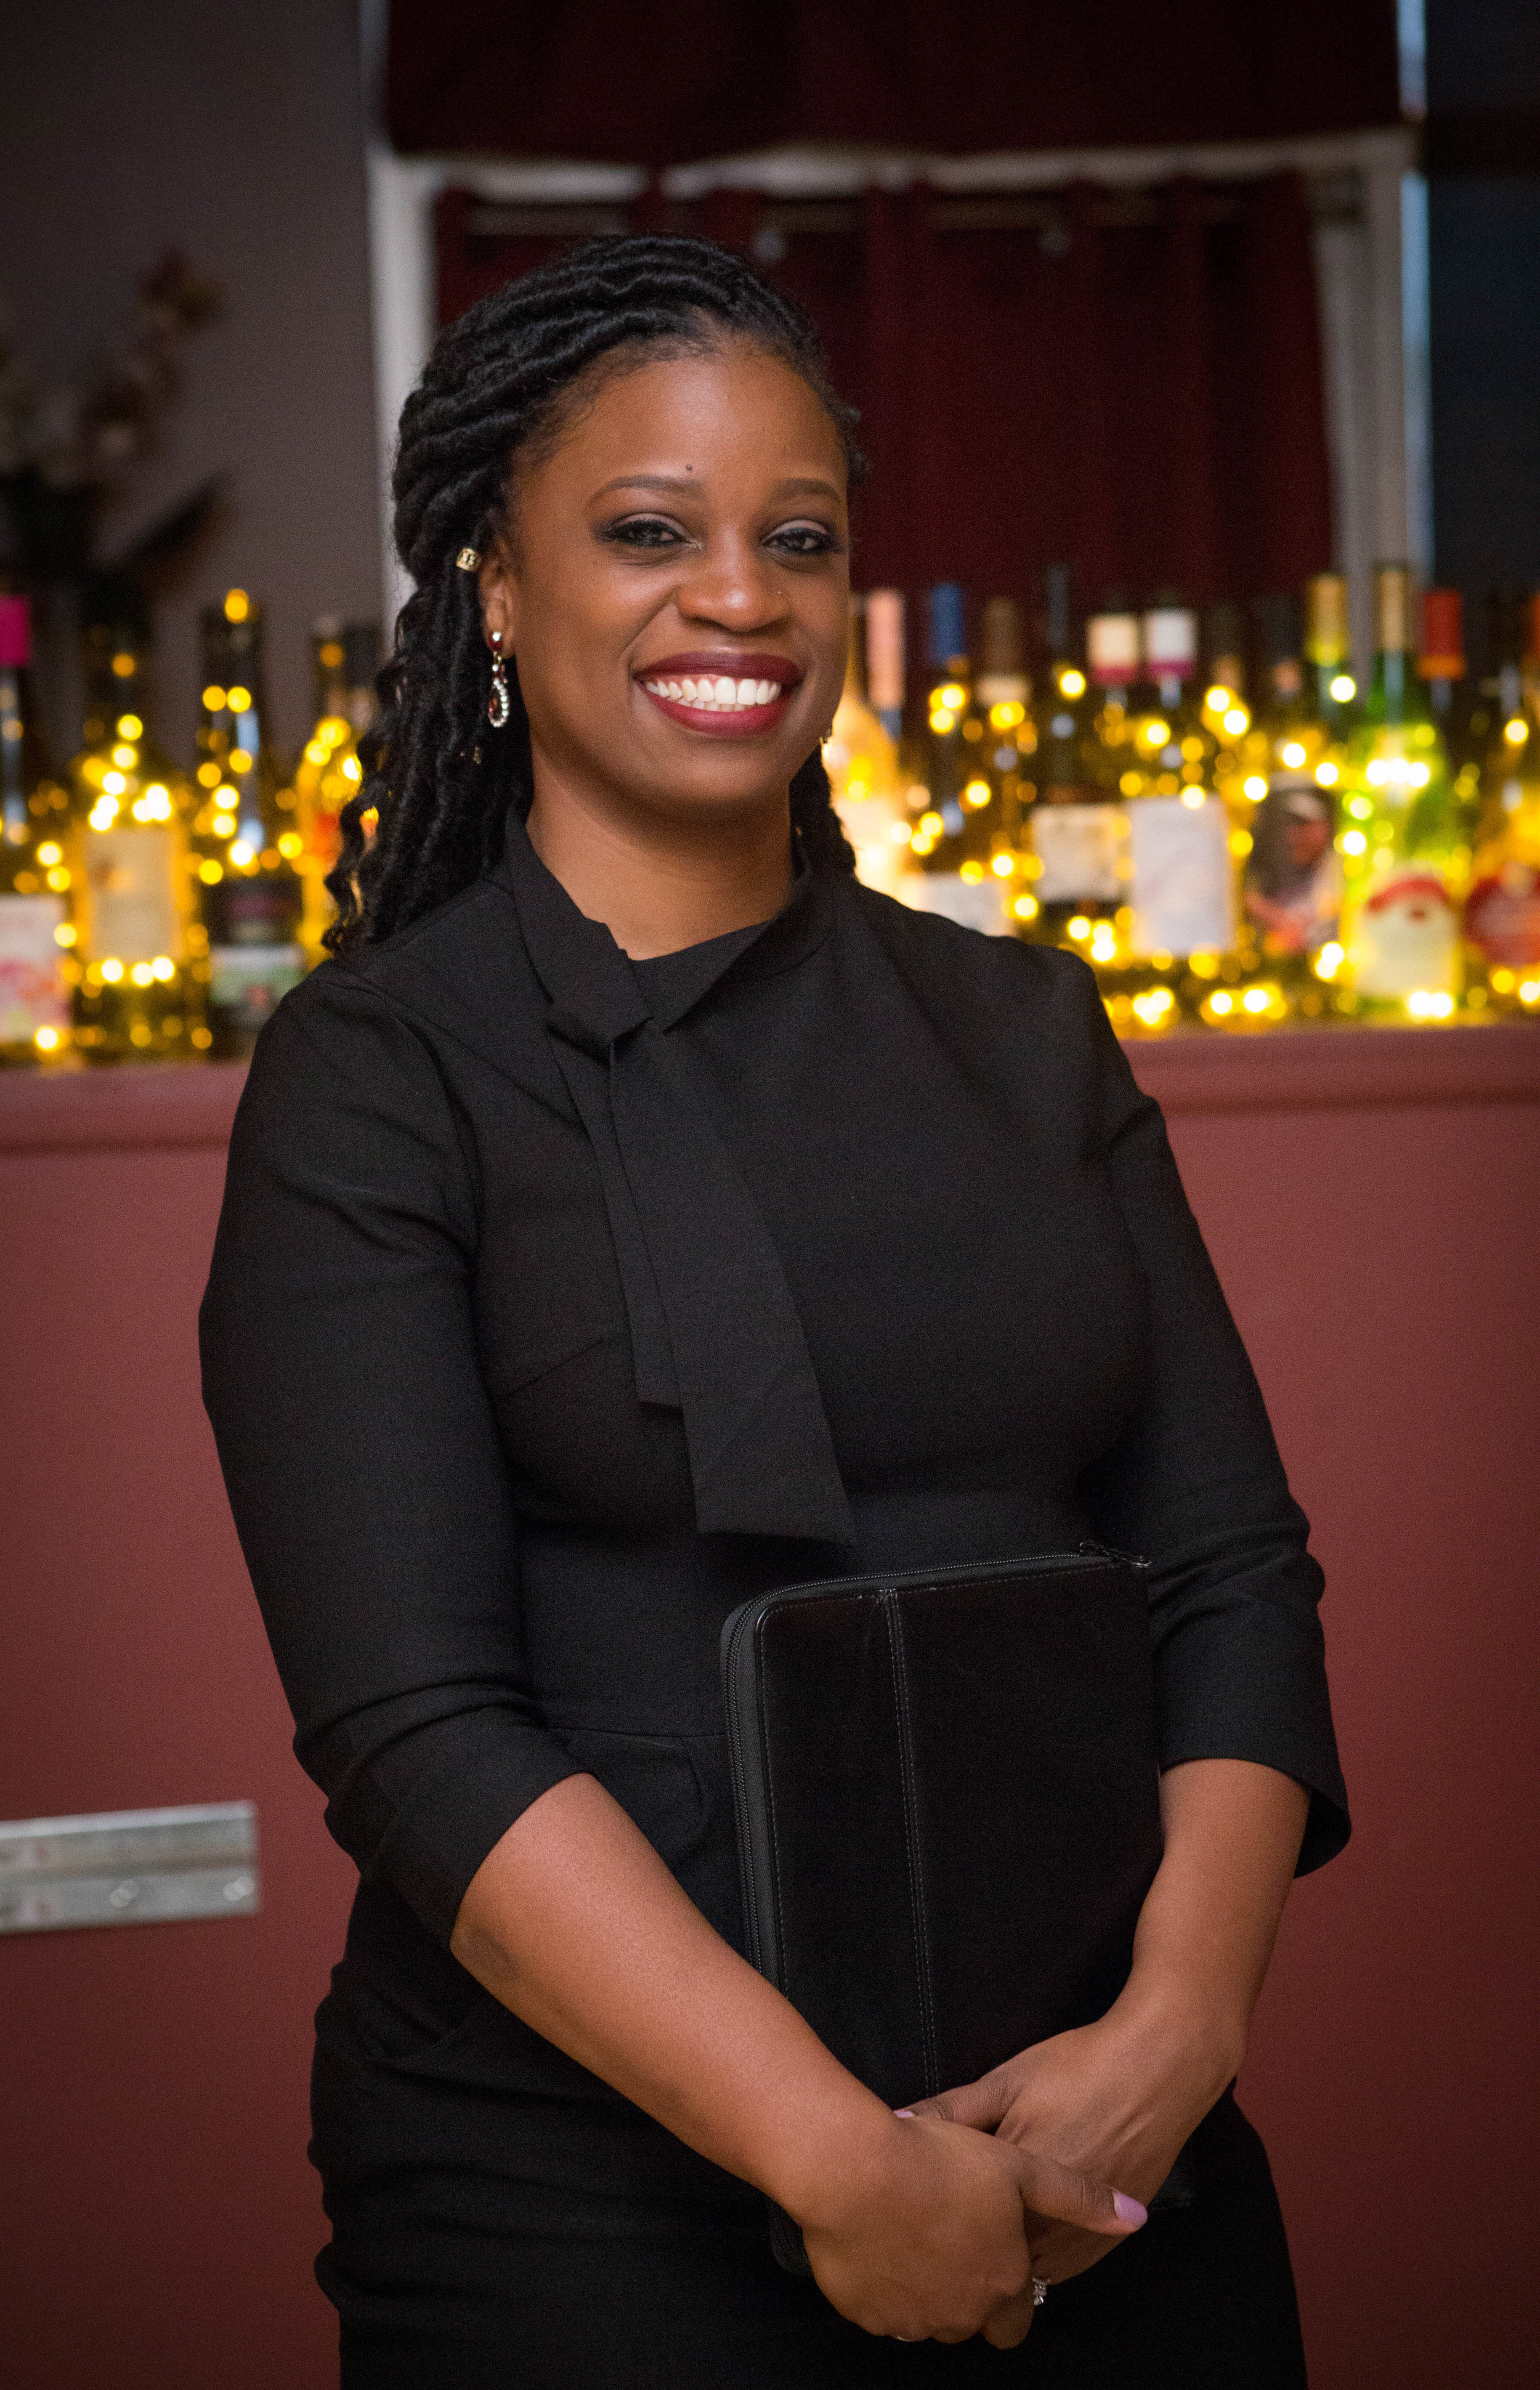 Minister Sharnise Sears - Photo Credit  www.stayfocusedfilms.com